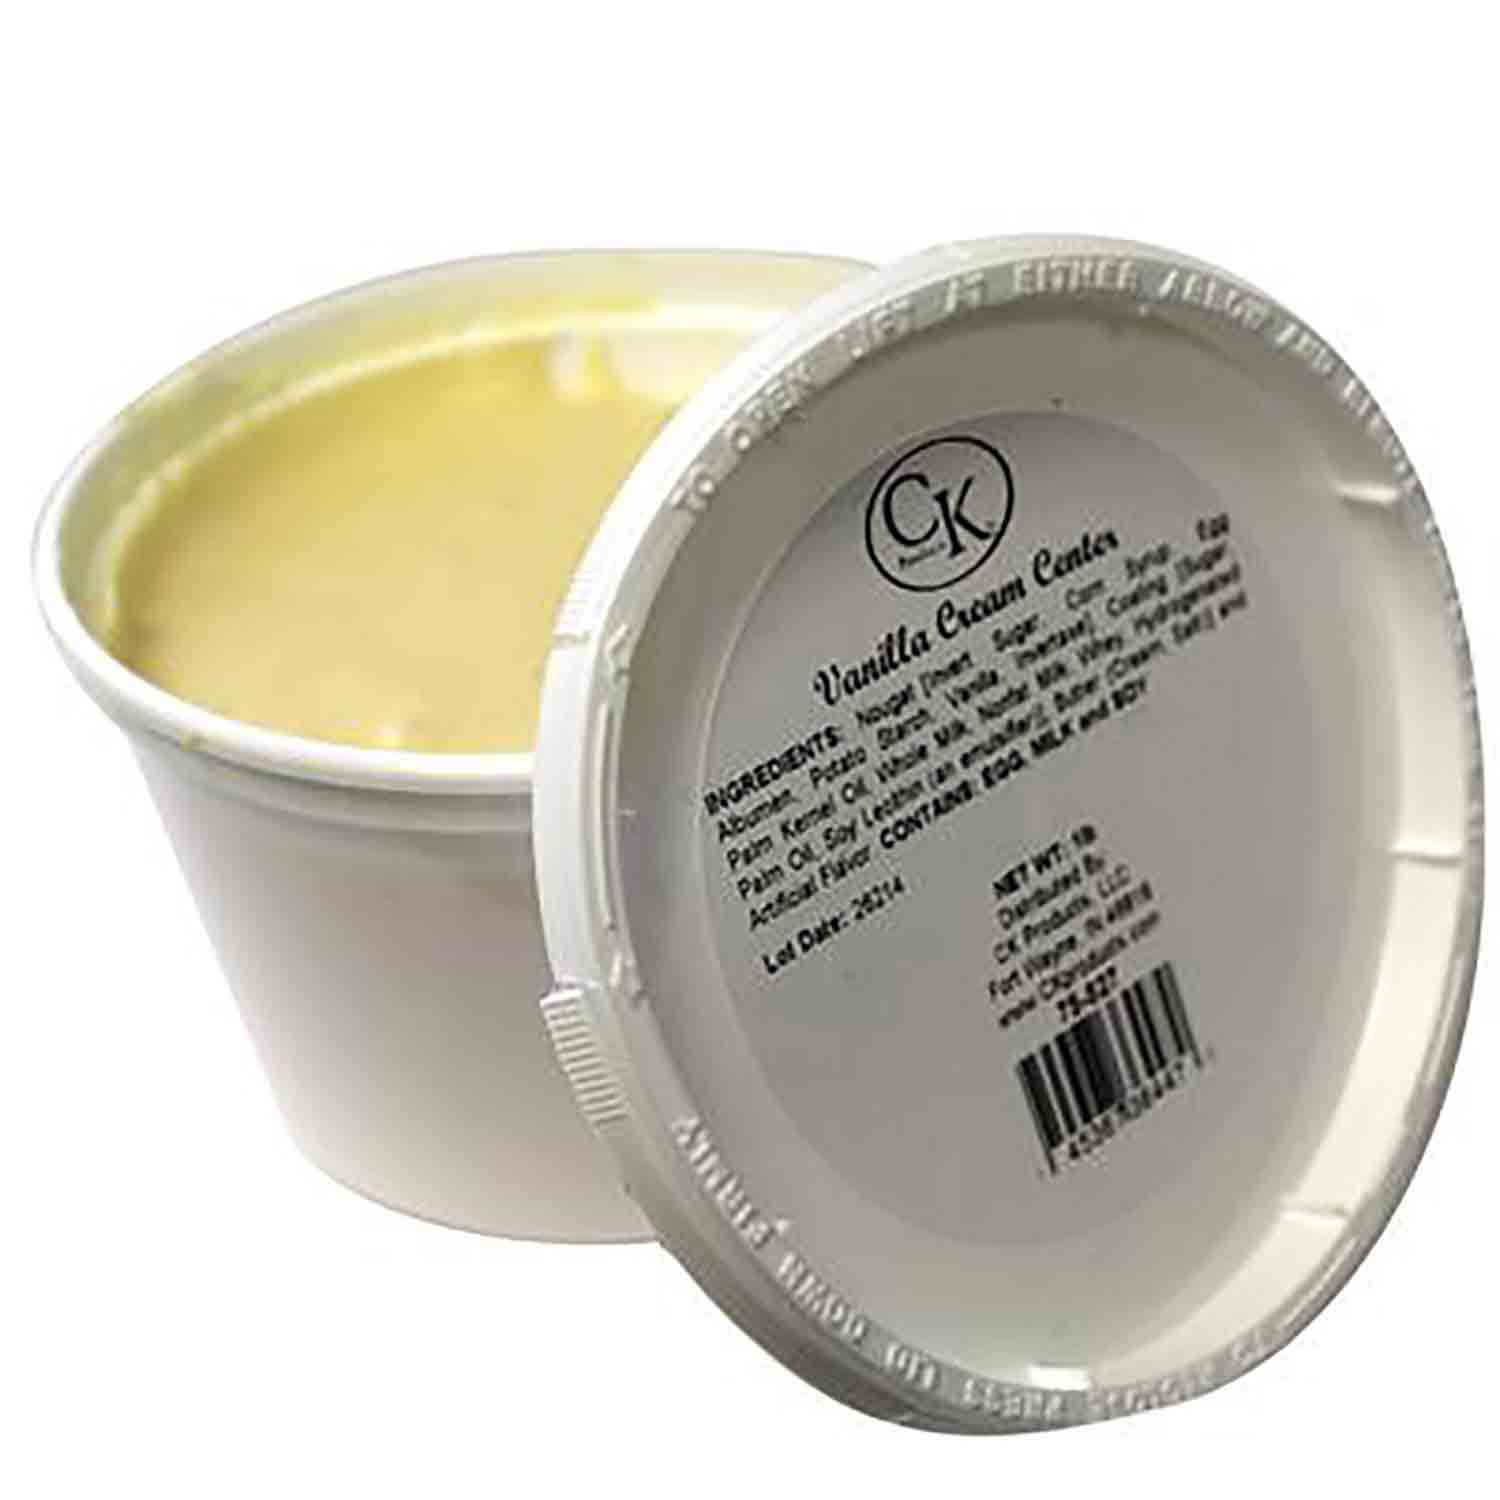 Vanilla Cream Center by CK Products/Burkes